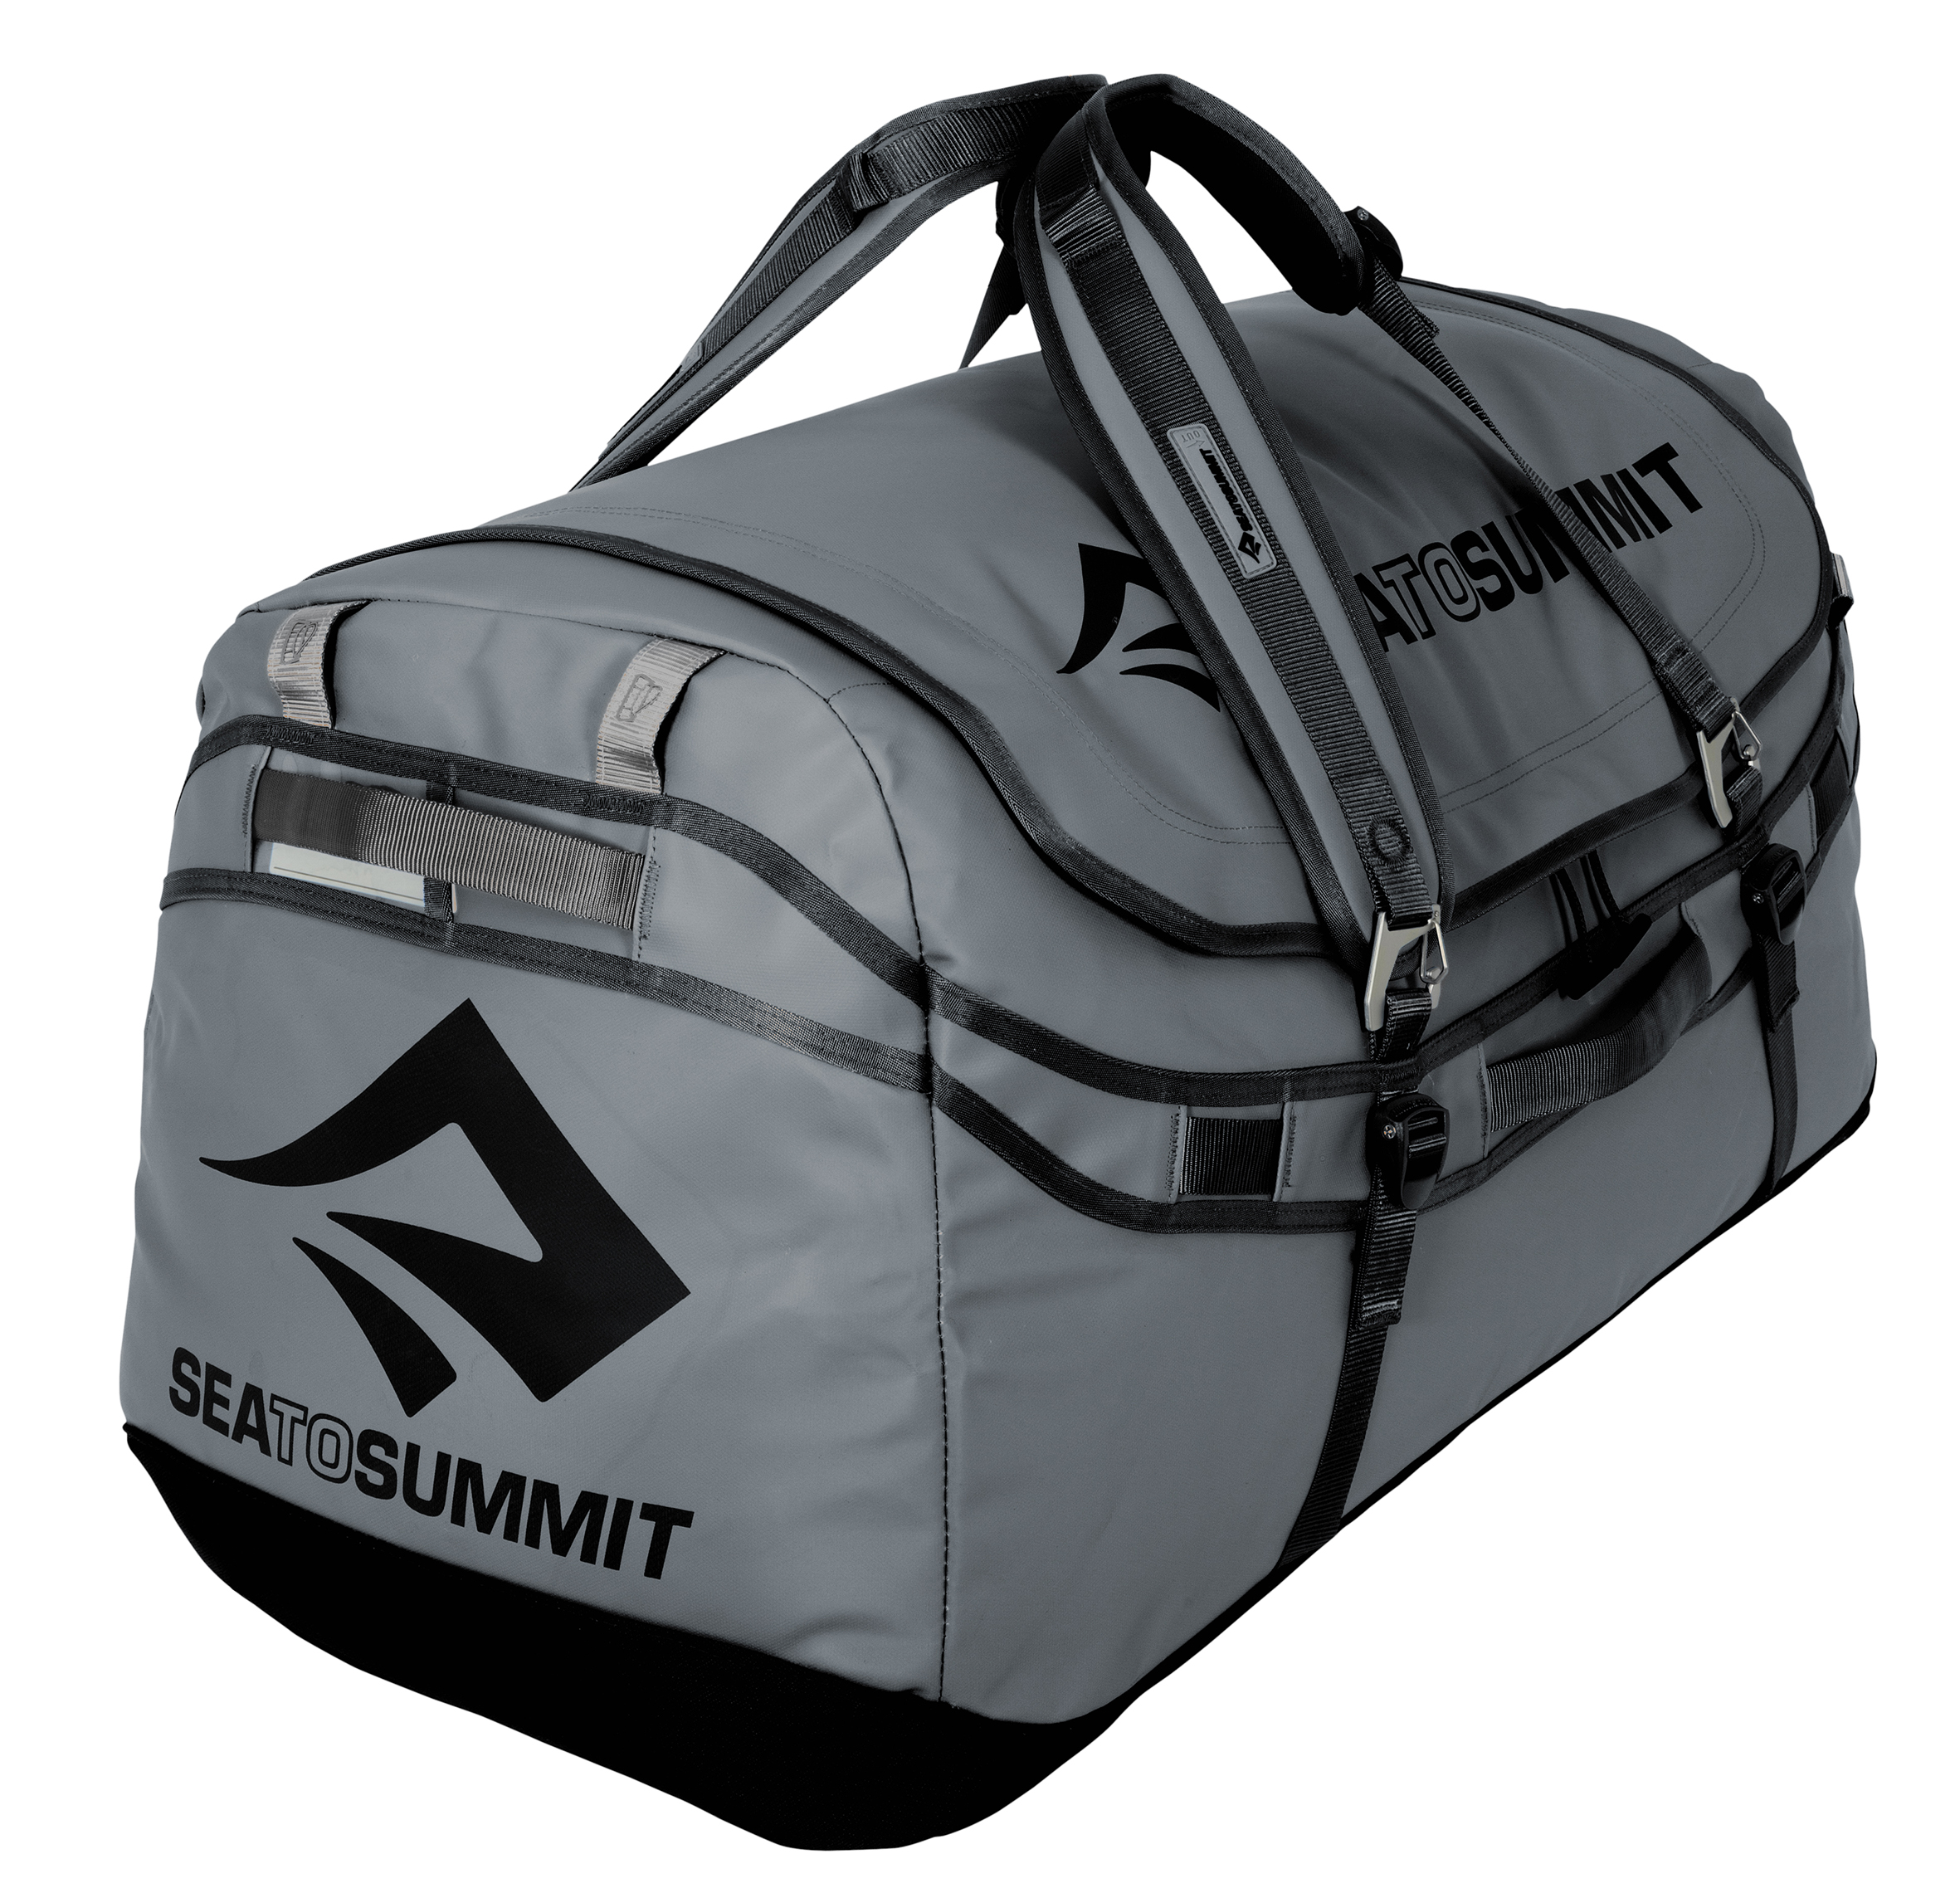 Сумка-баул Nomad Duffle 130L Sea To Summit — фото 2